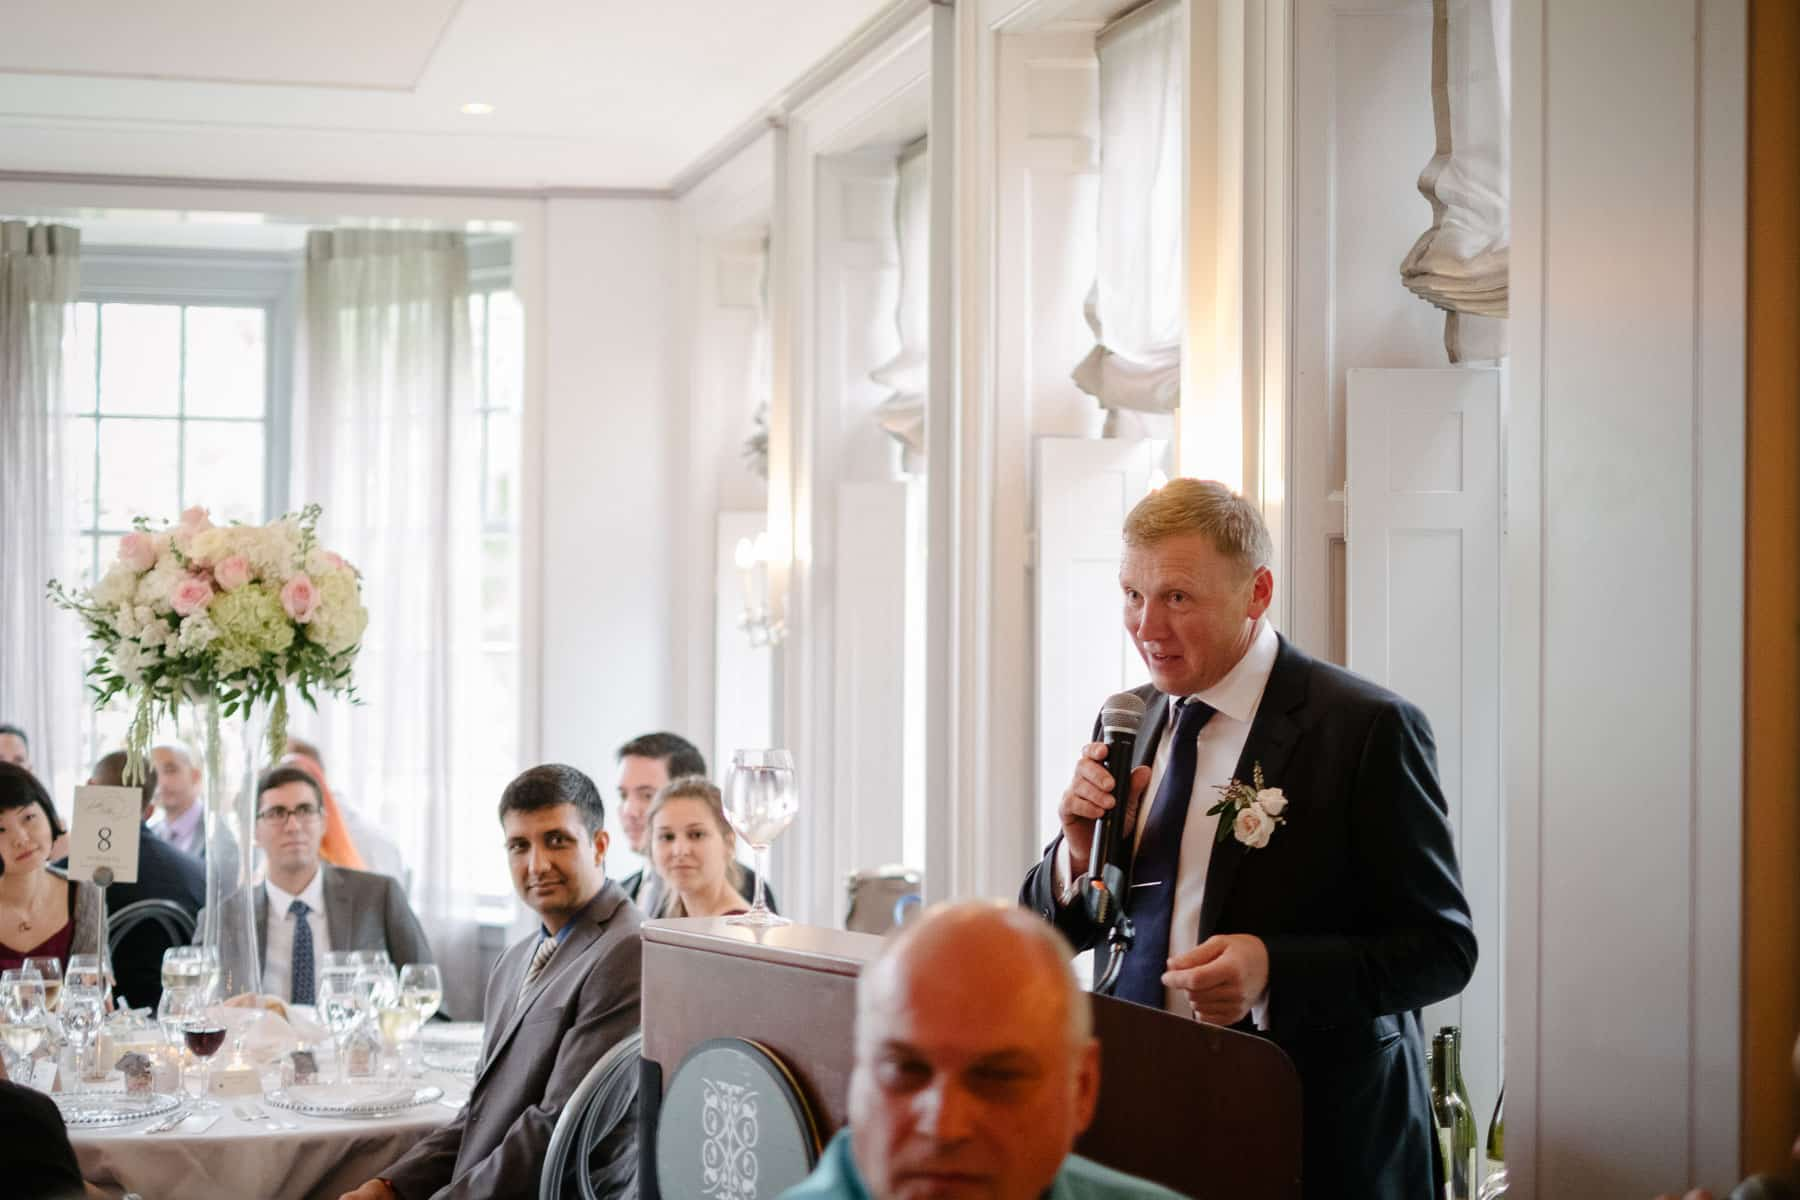 Bride's father gives a speech and toast in dinner hall of McClain House, Estates of Sunnybrook.